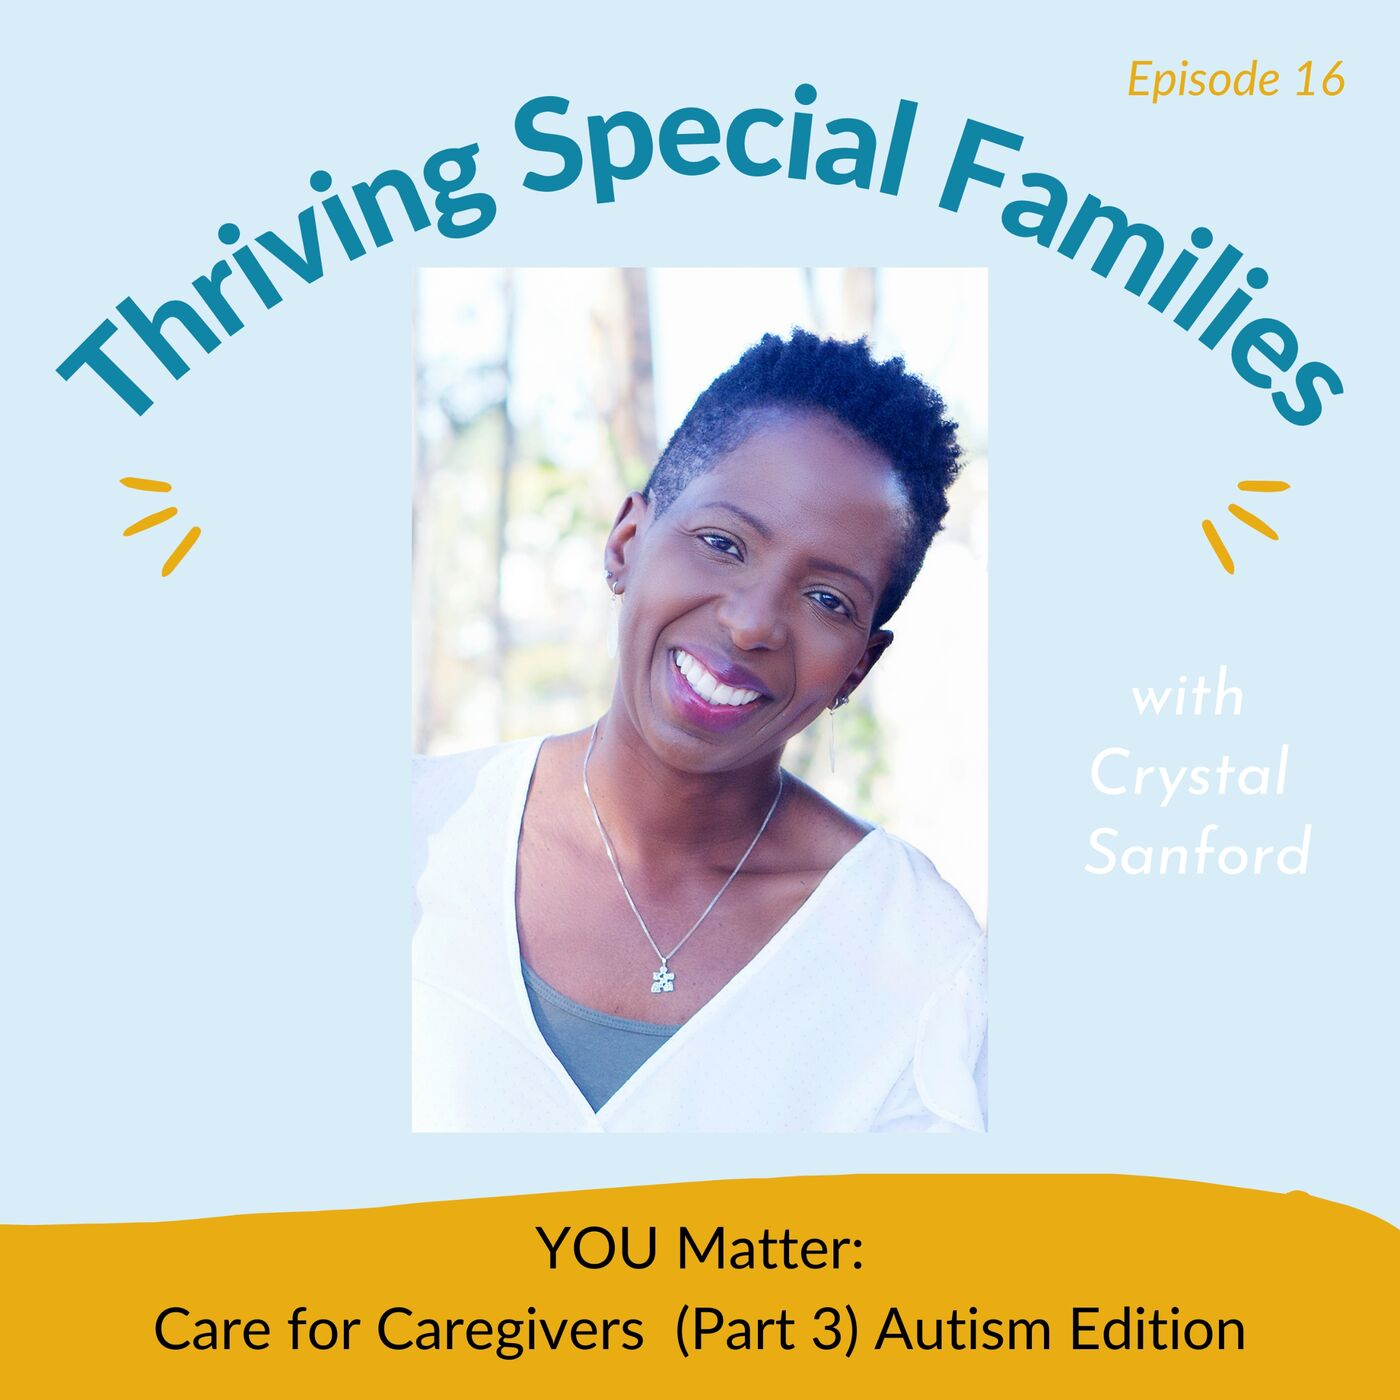 YOU Matter: Care For Caregivers (Part 3)